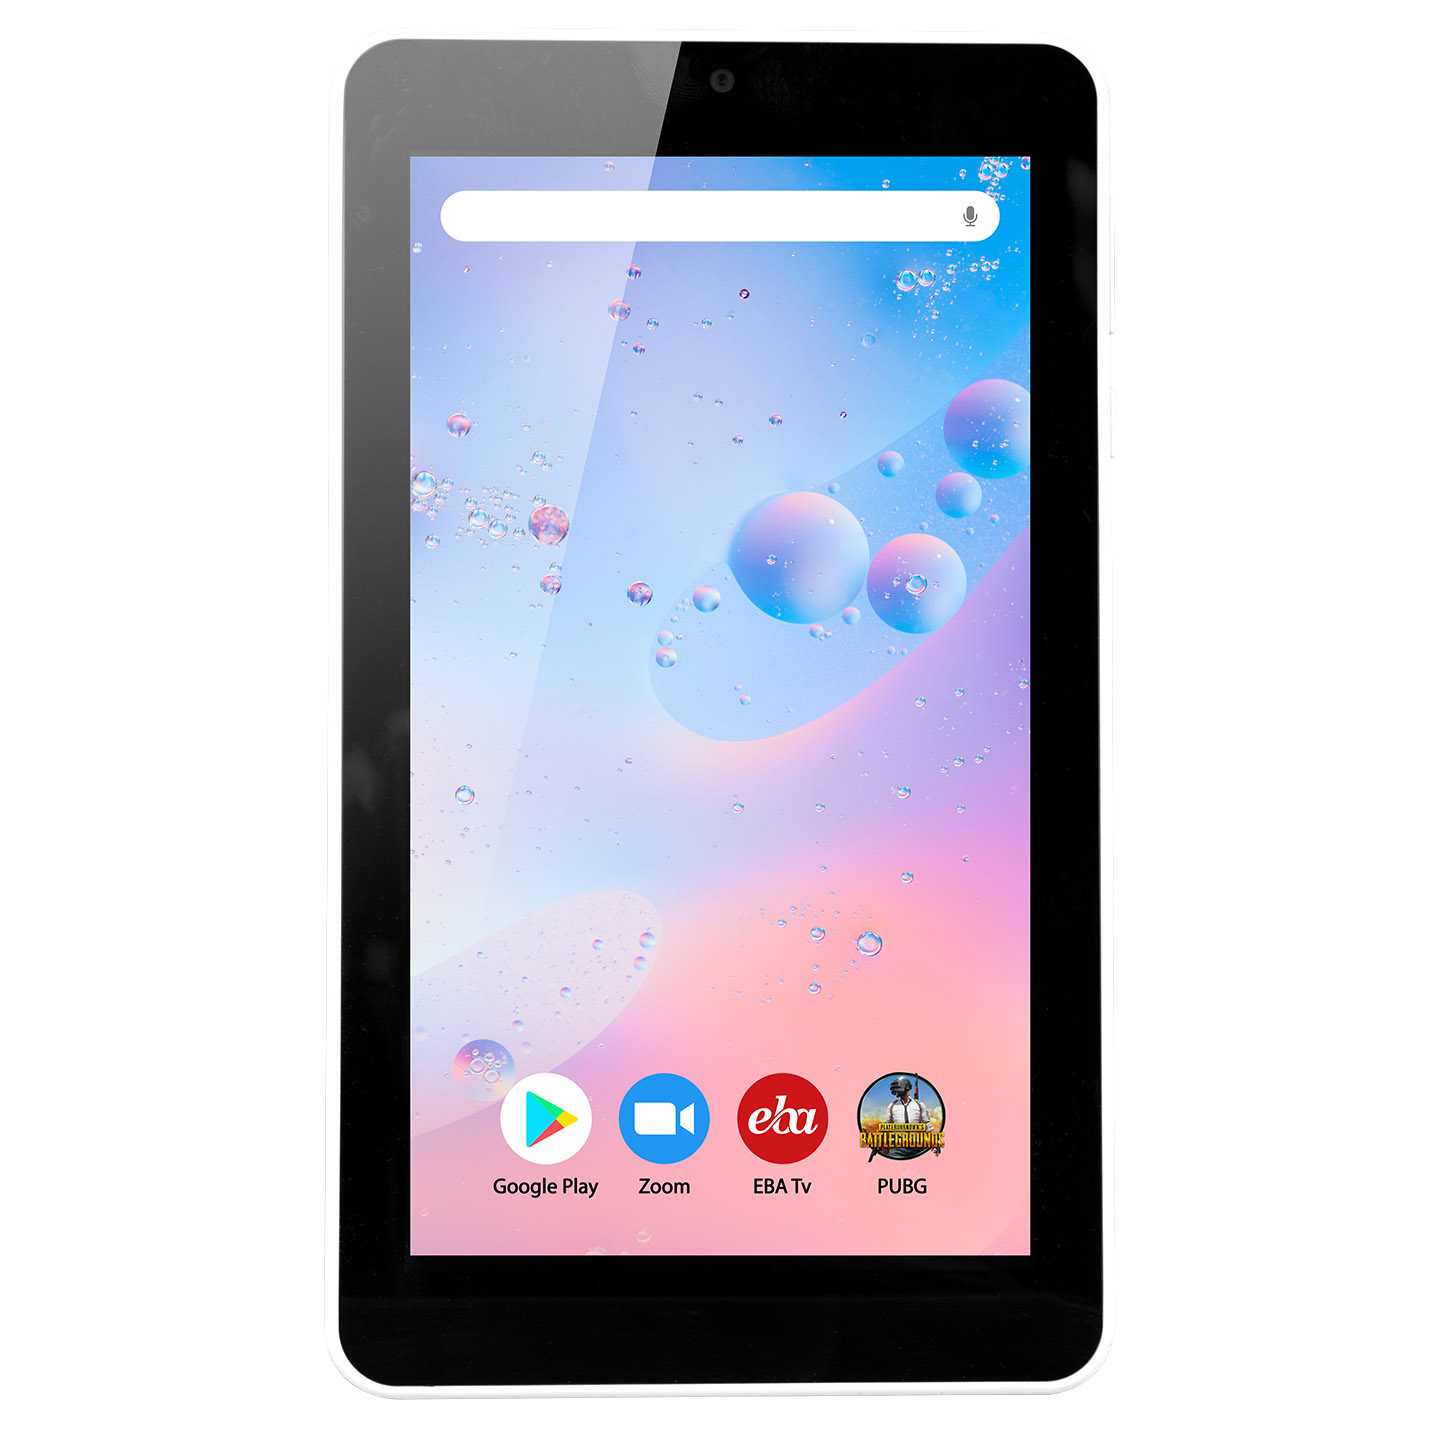 Everest EVERPAD DC-8015 Beyaz Wifi + BT4.0 Çift Kamera 1024*600 IPS 2GB 1.0Ghz 2G+16GB 7Android 10.0 GO GMS